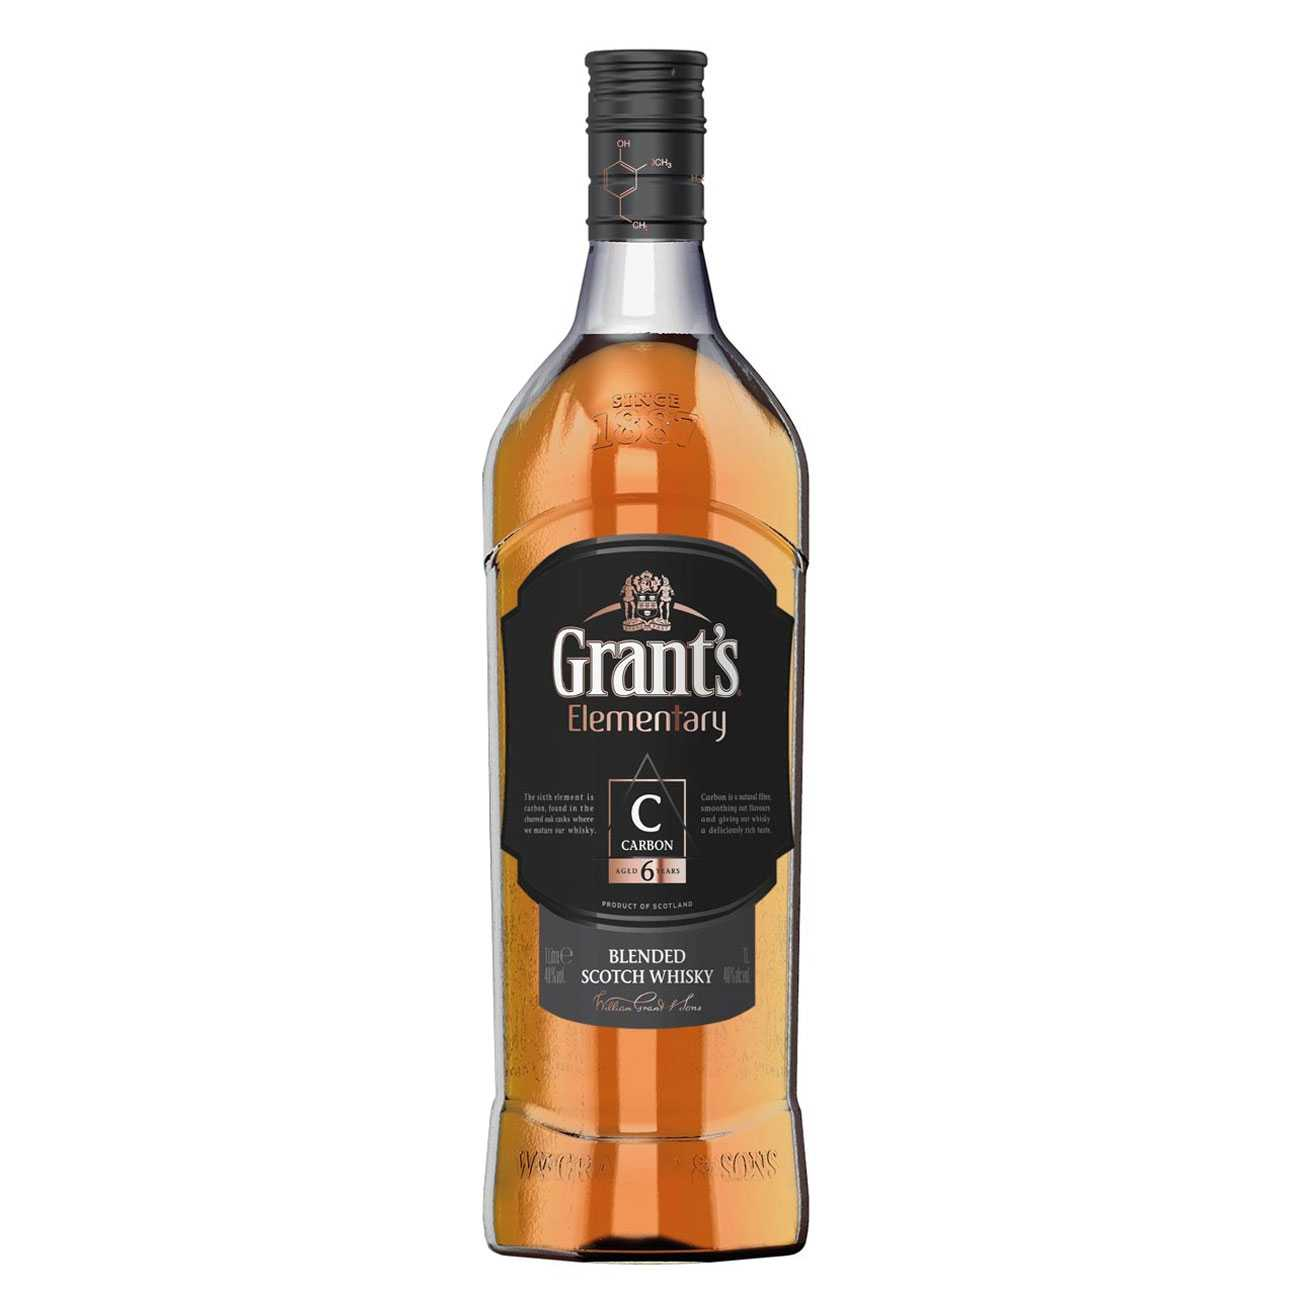 Whisky scotian, CARBON 6 YEARS 1000 ML, Grant's